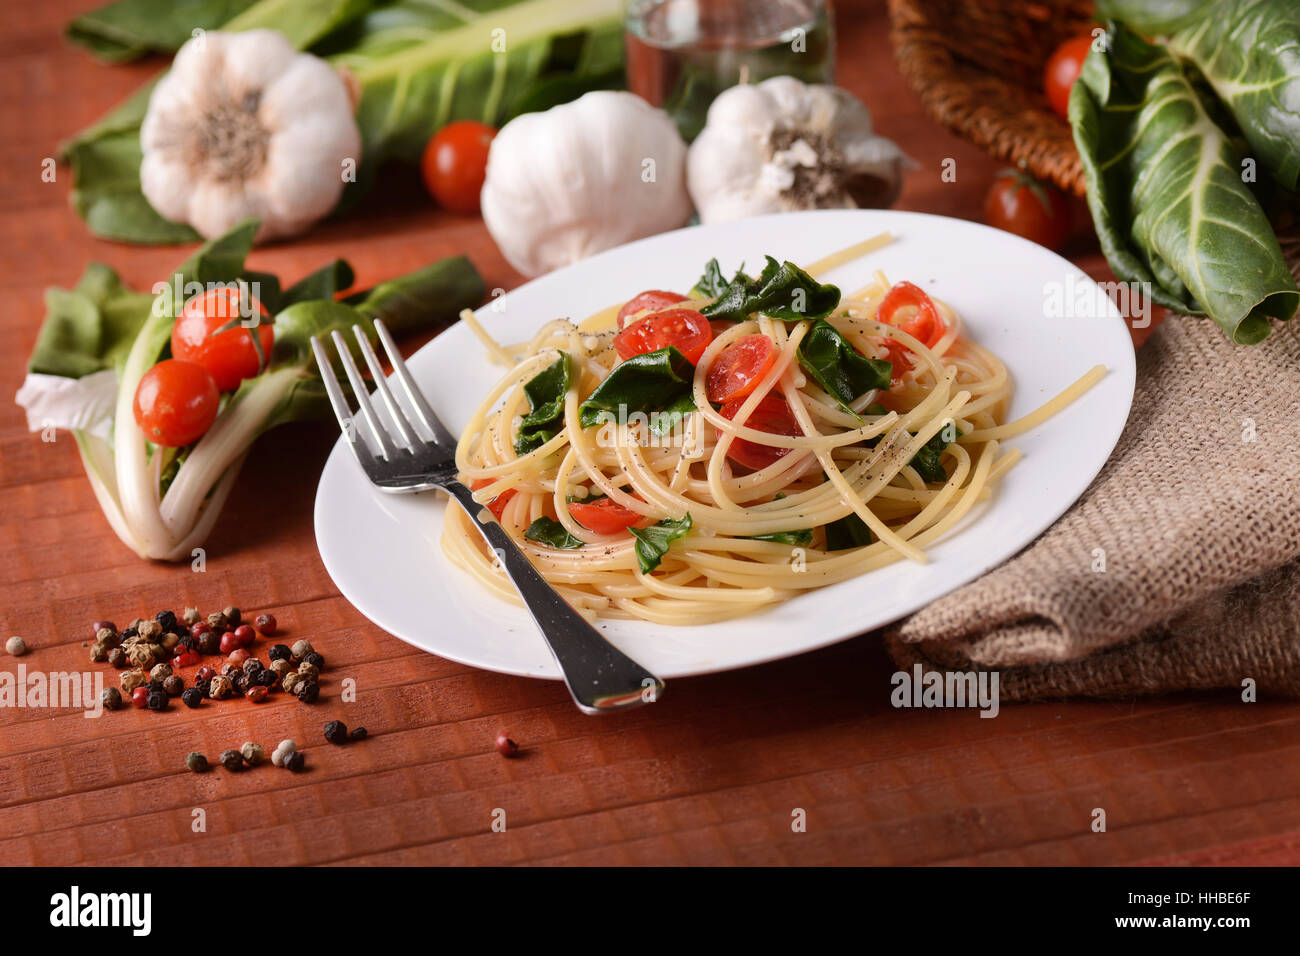 Spaghetti with chard and tomato - Italian food - Stock Image